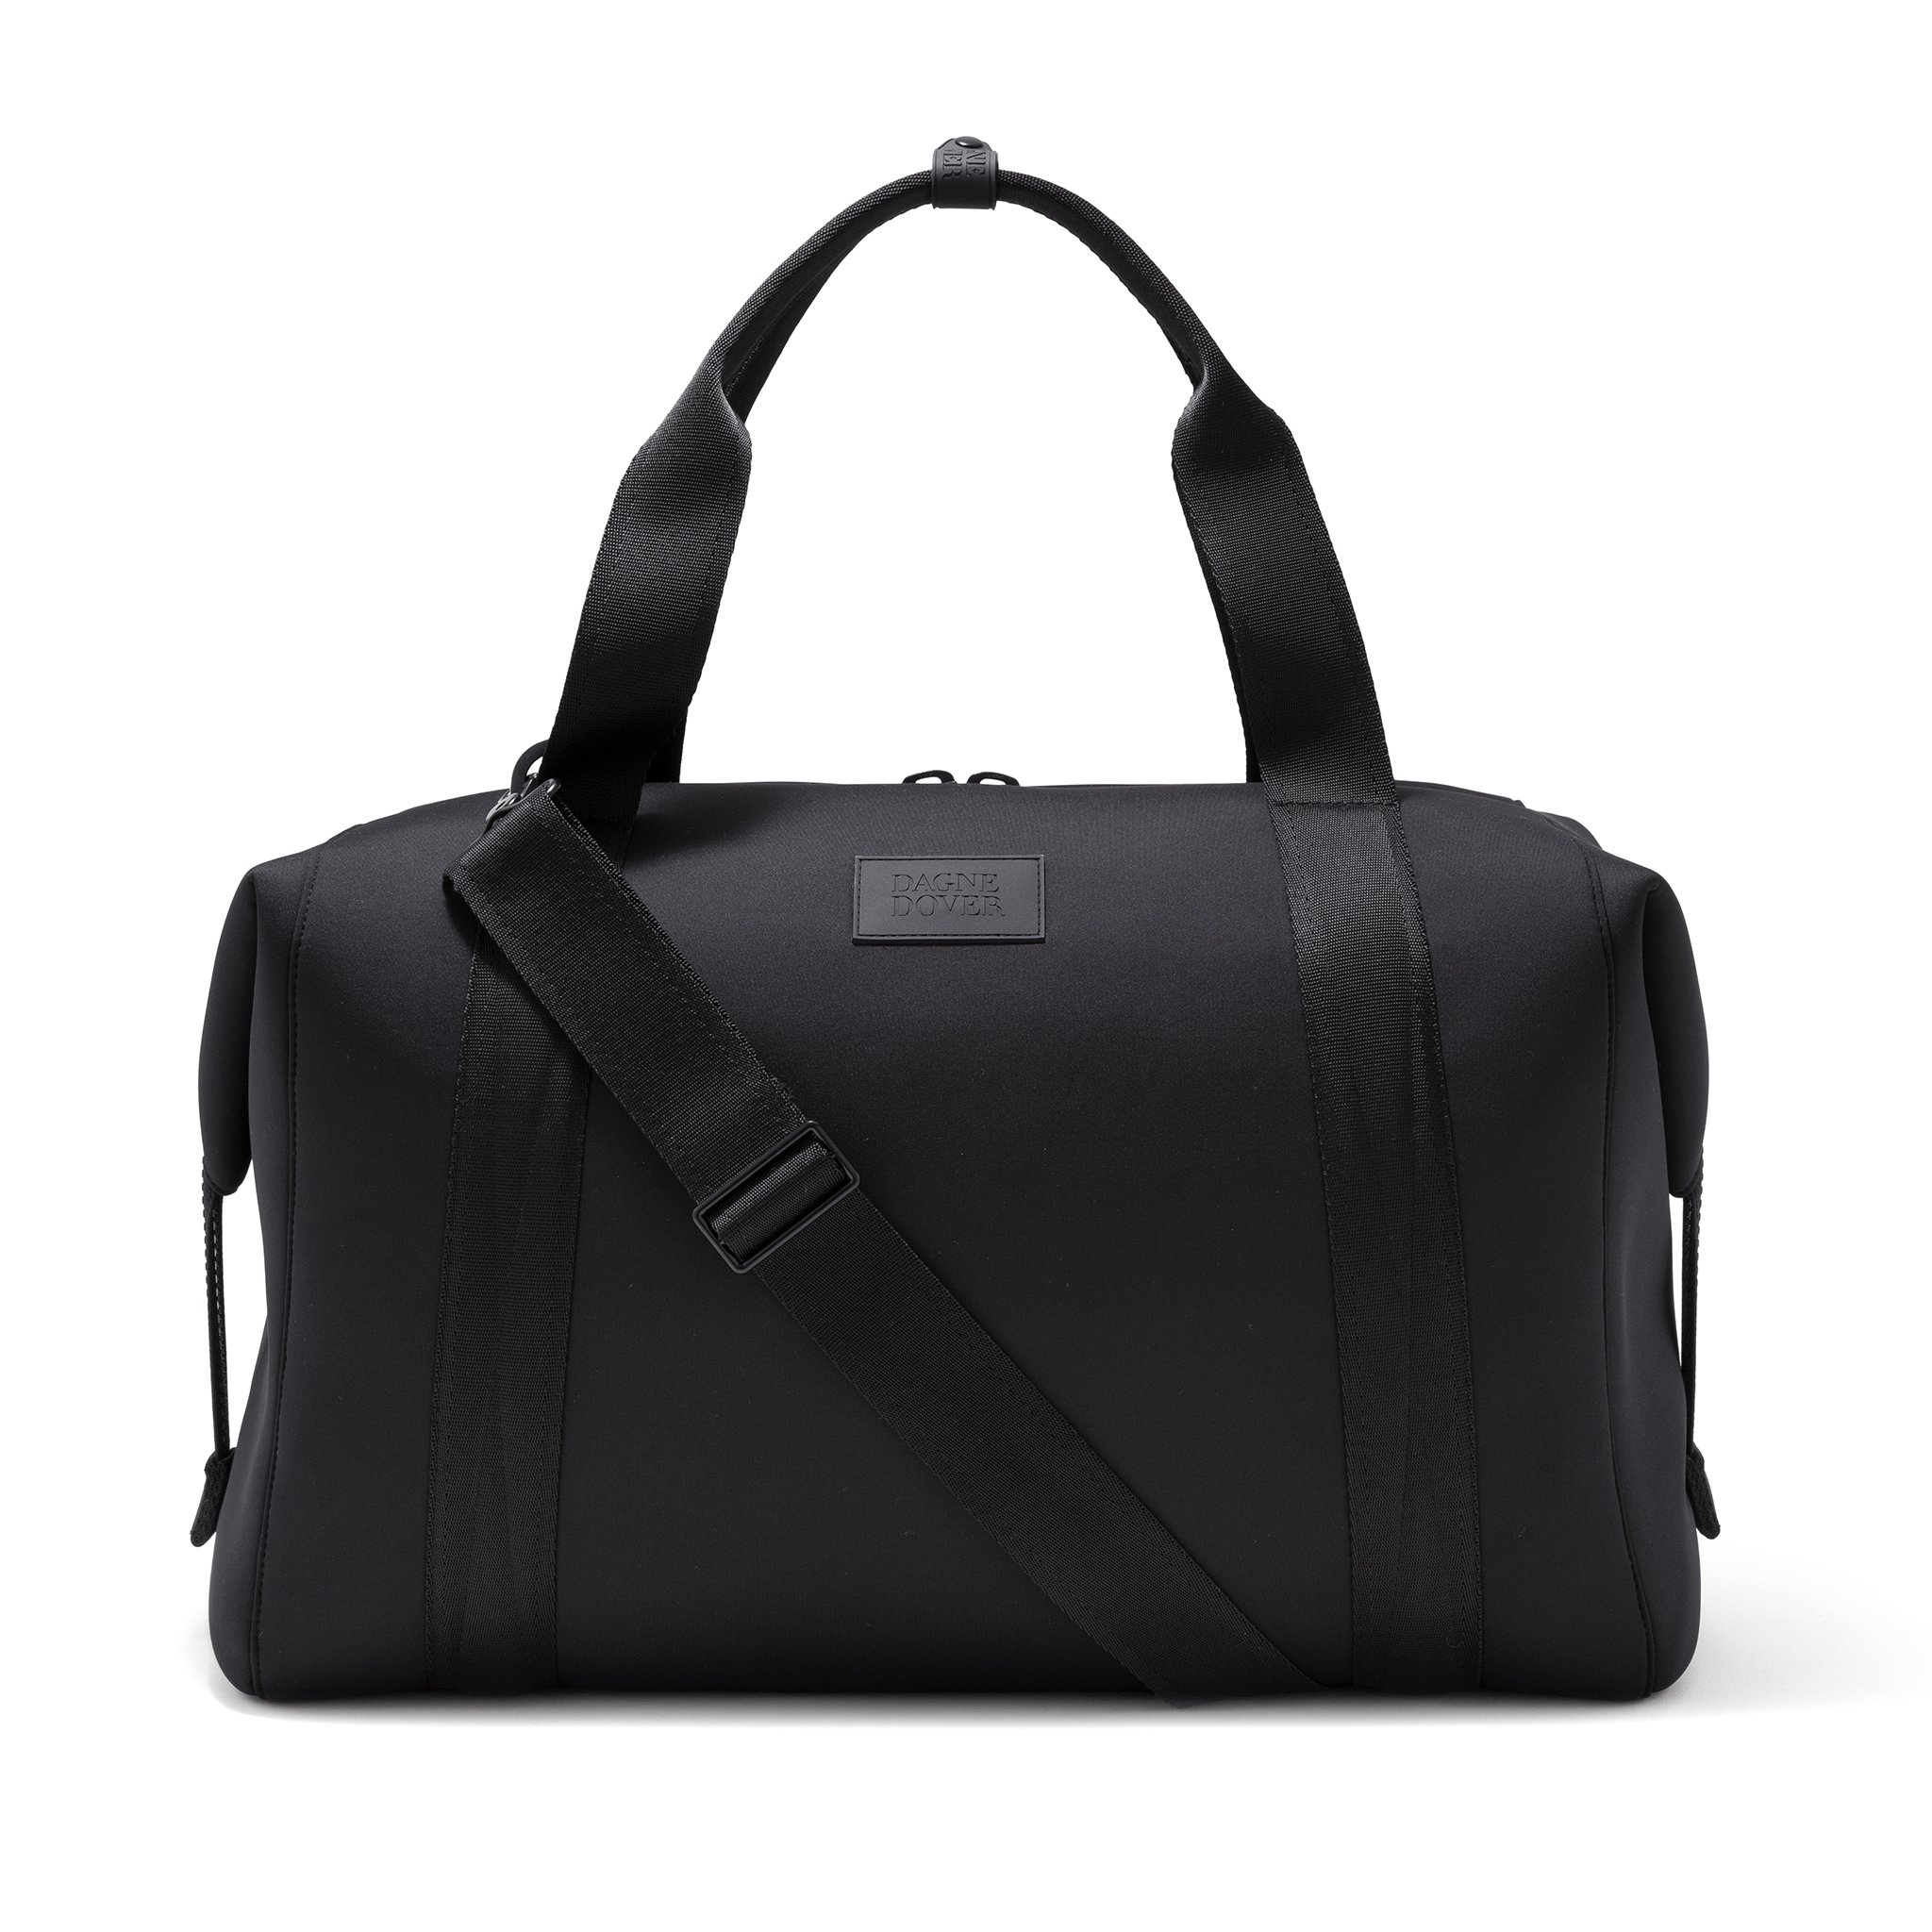 Landon Carryall Bag $215.00